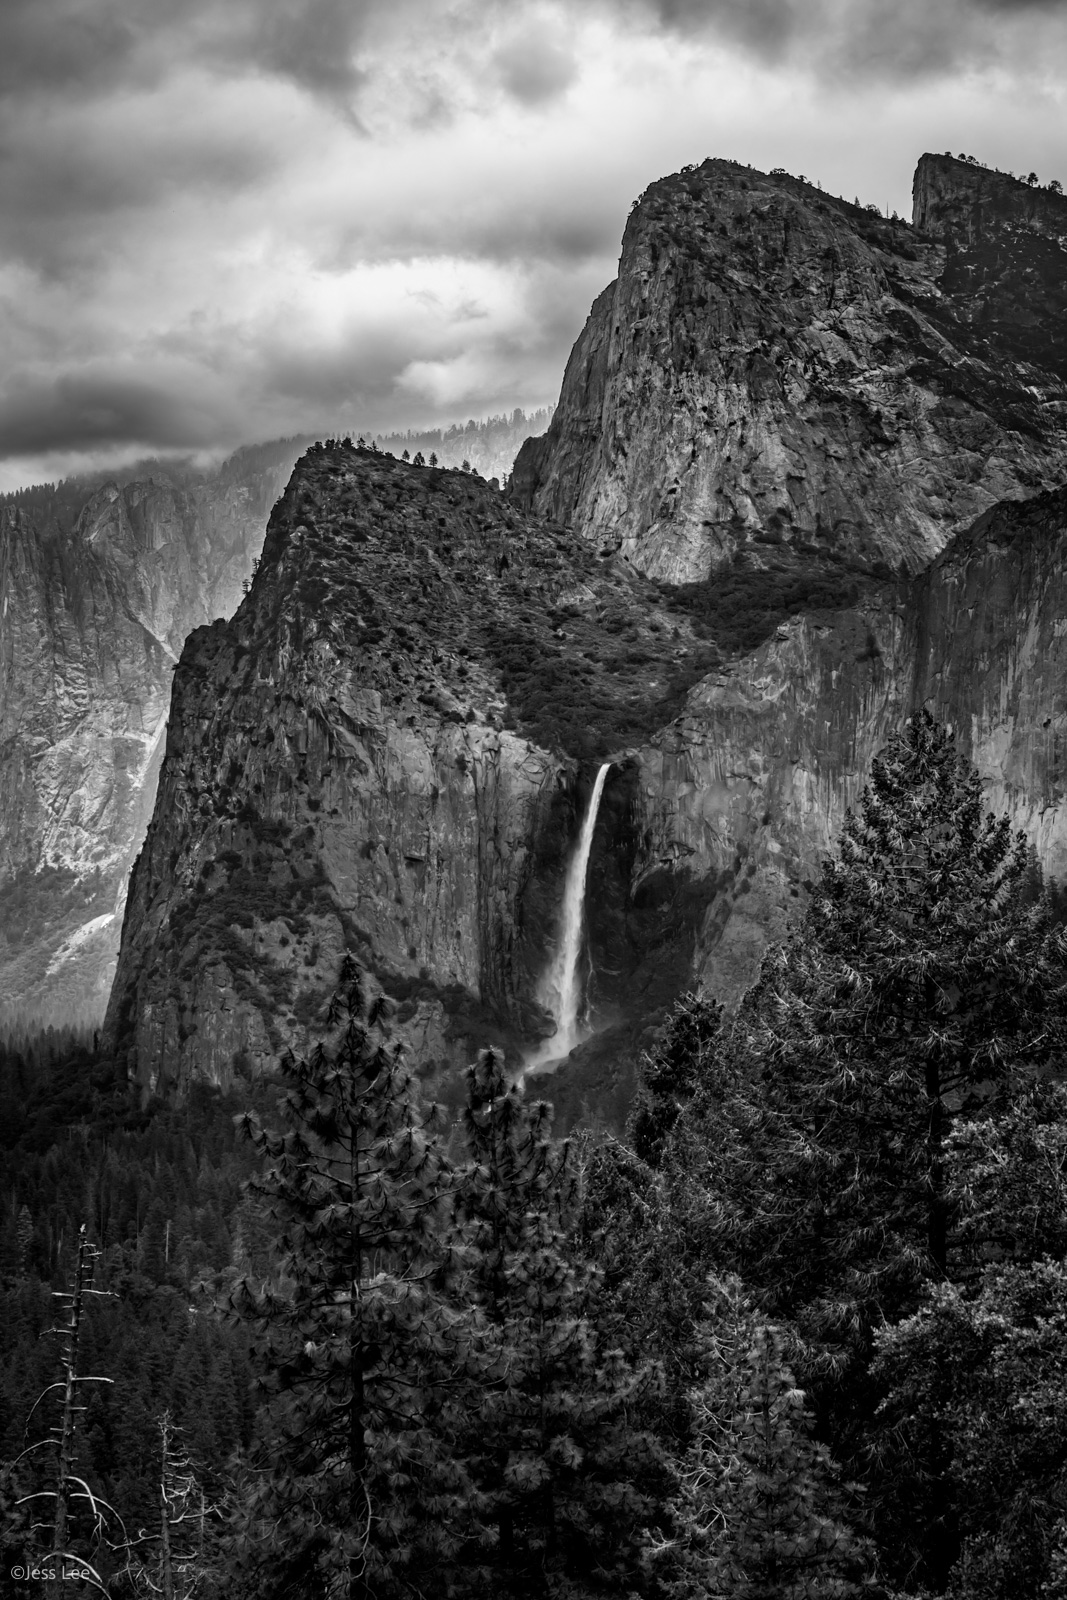 Fine Art Limited Edition Photography Print of Bridal  Vail Falls . California Landscape Print of Yosemite valley.This is part...